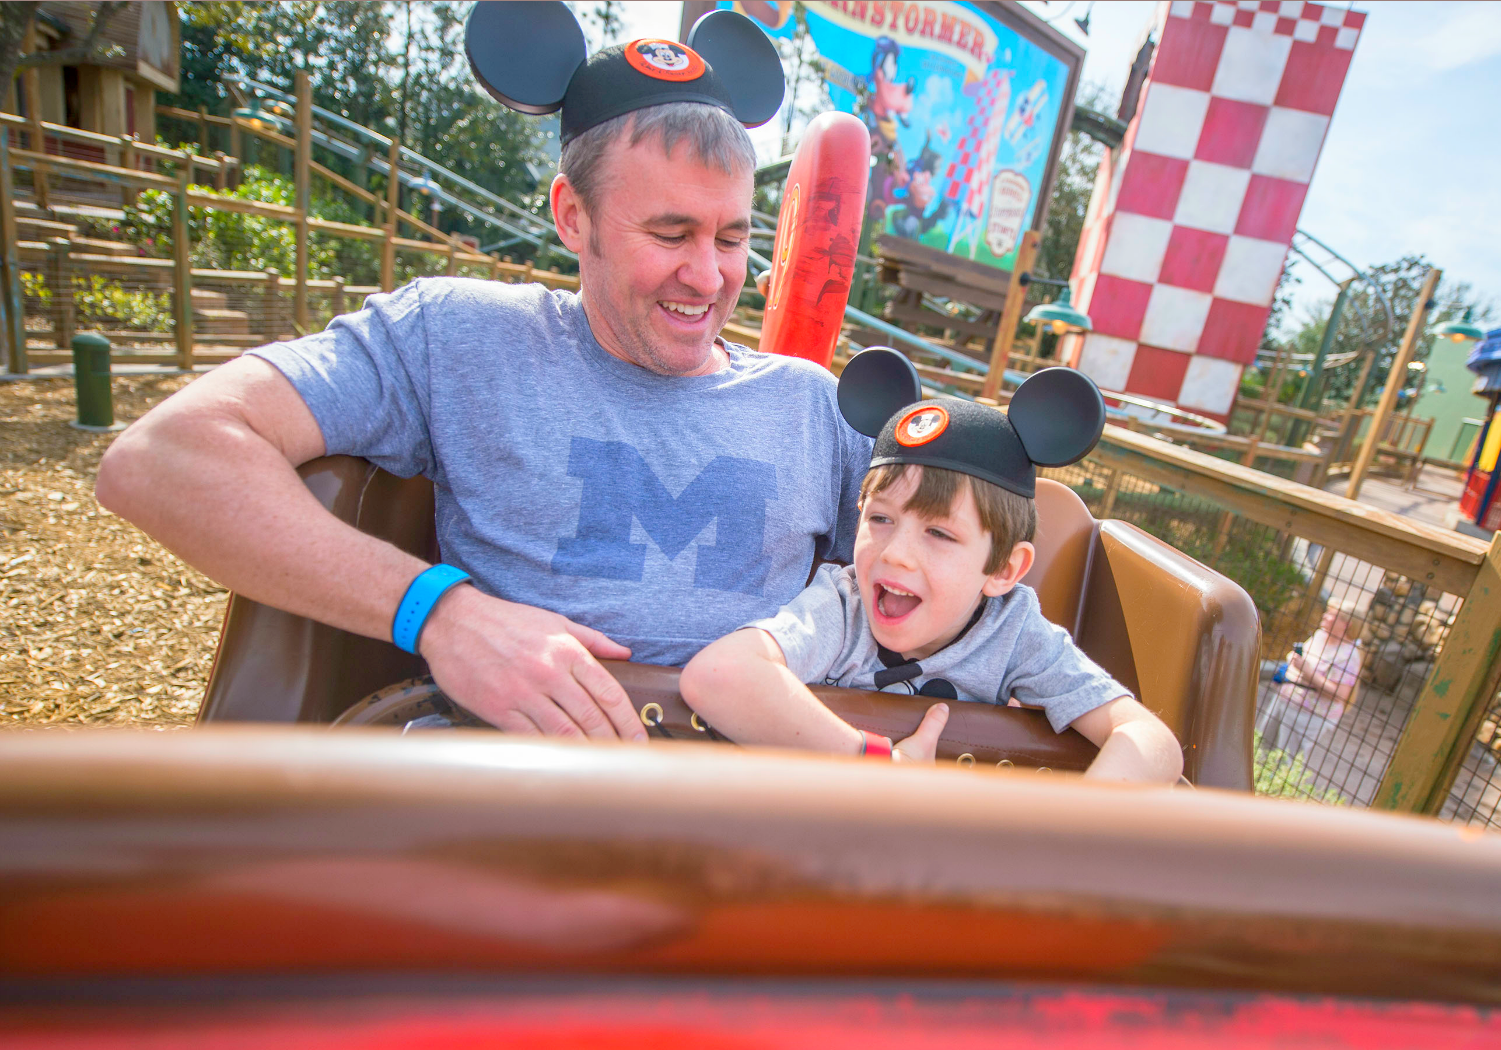 The Best Age For a First Trip to Disney World